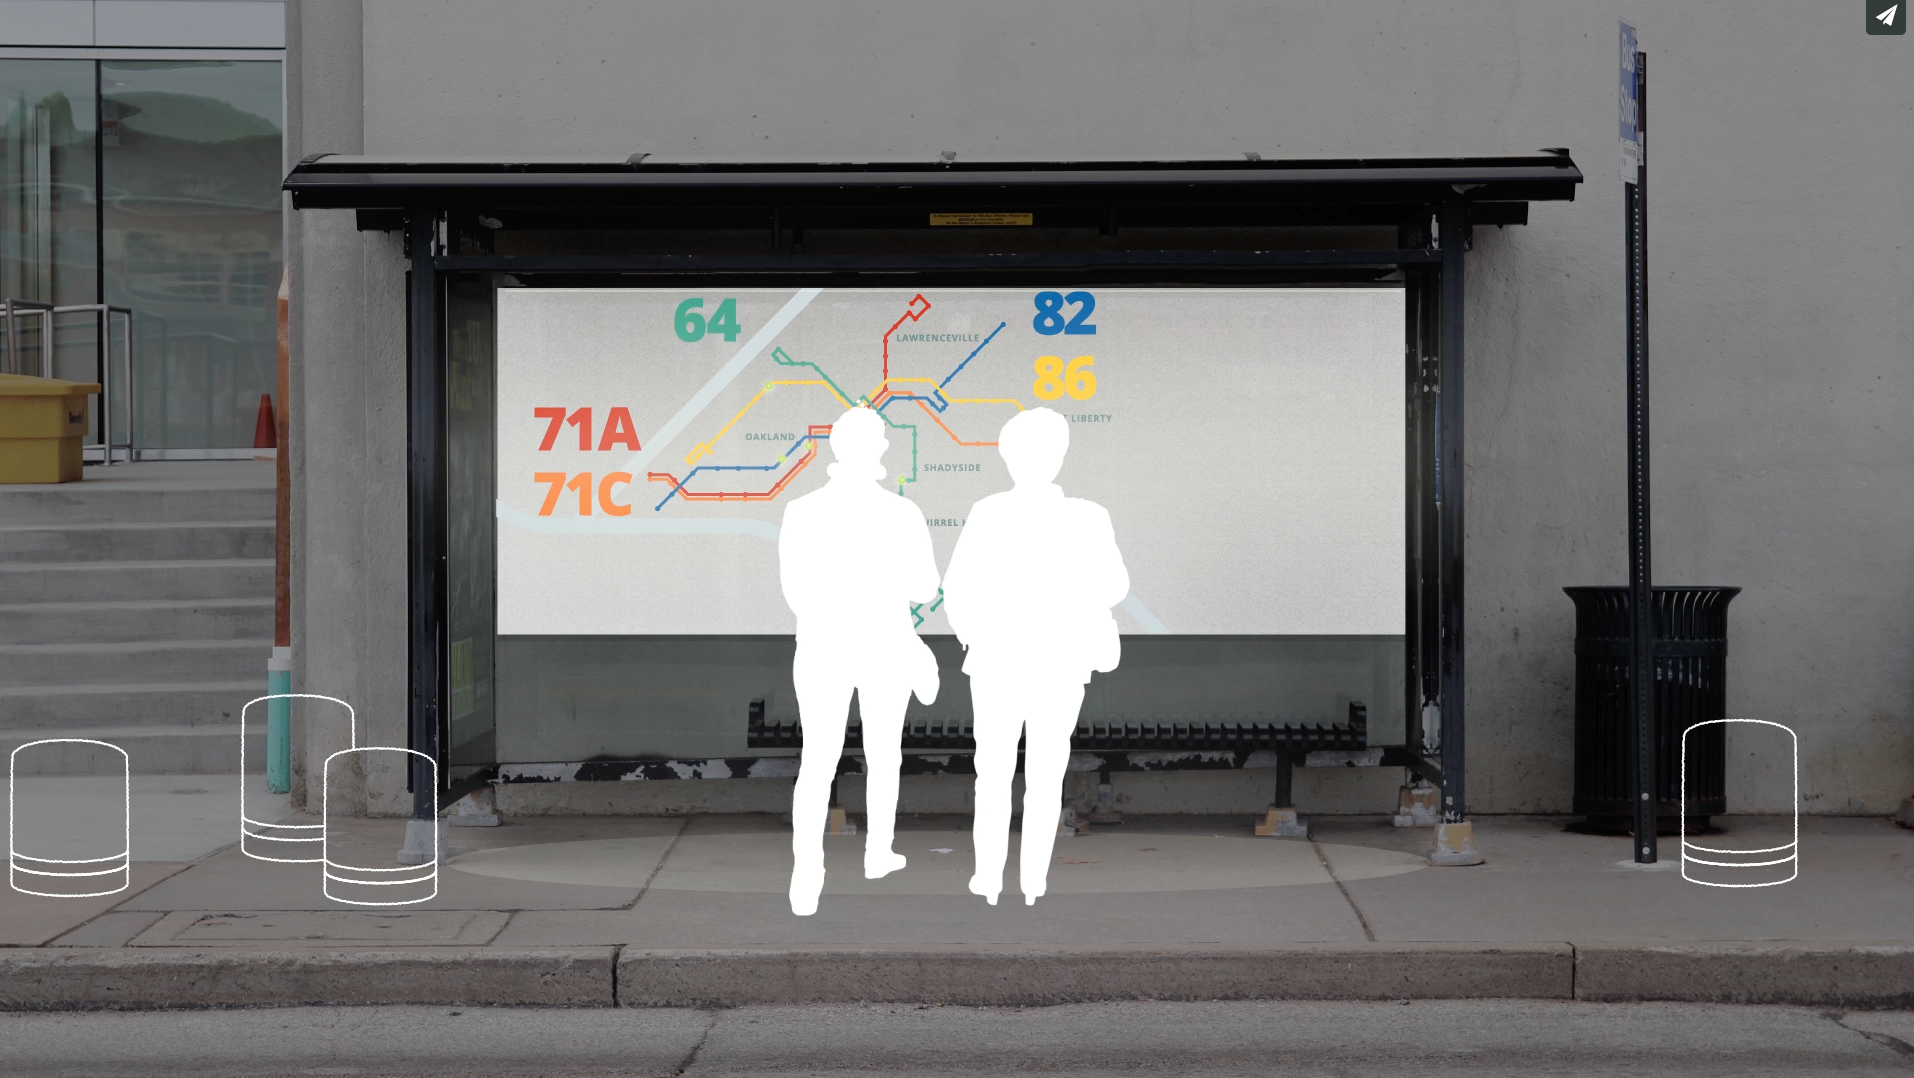 Interventions proposed to the bus stop to reduce the anxiety of the wait -- design ethnographic research was conducted and interventions focused on practical, implementable solutions. Additional Team: Saumya Kharbanda and Kate McLean